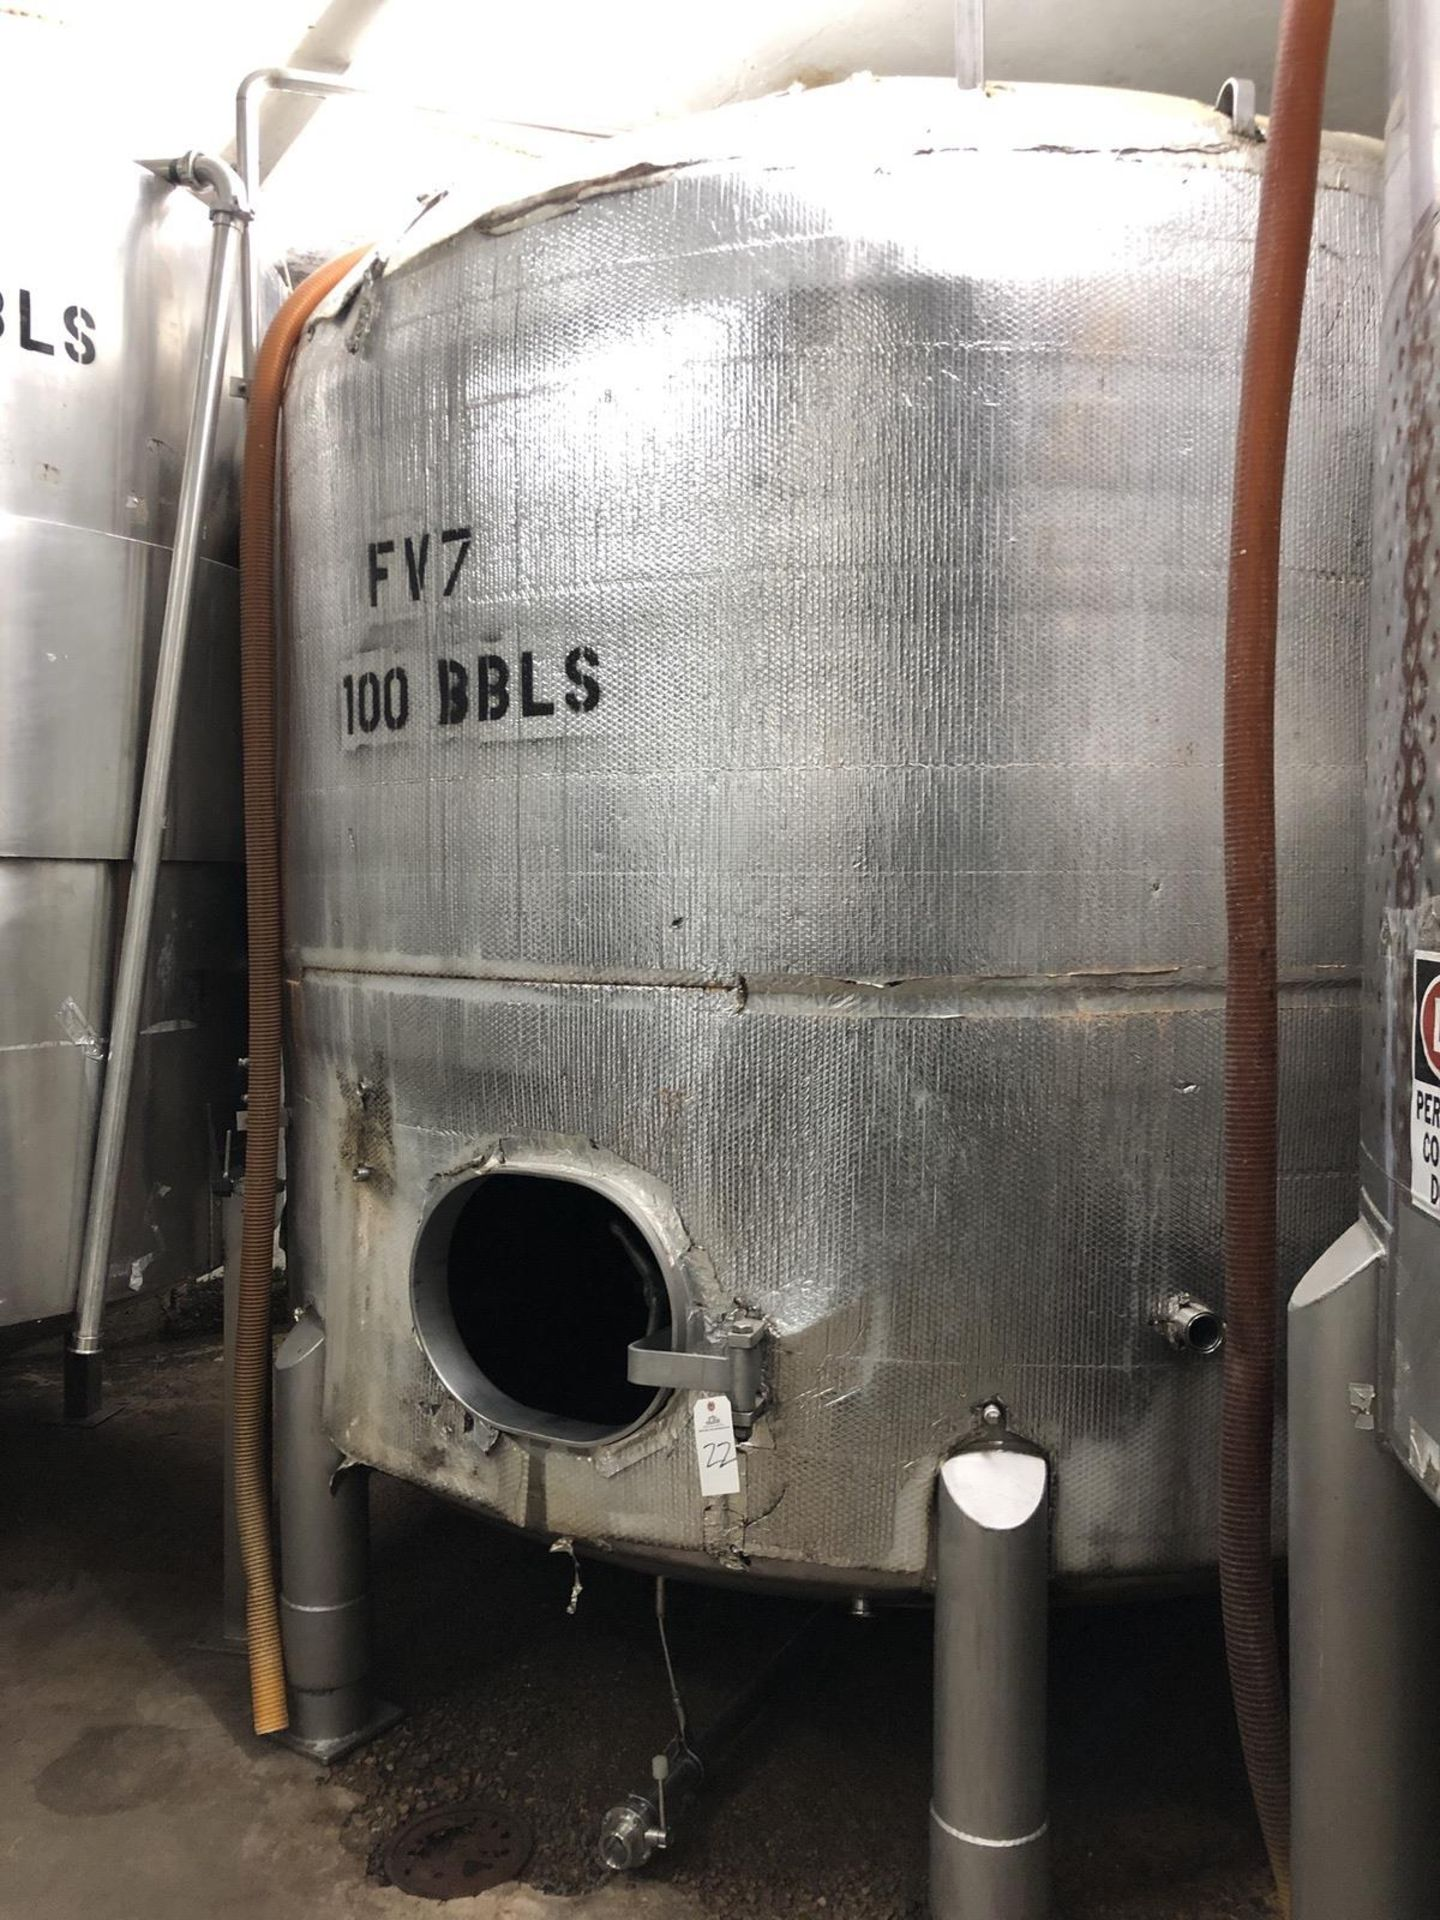 Lot 22 - Santa Rosa 100 BBL Fermenter, Dish Bottom, Glycol Channel Jacketed, Stainless Steel | Rig Fee: $2000